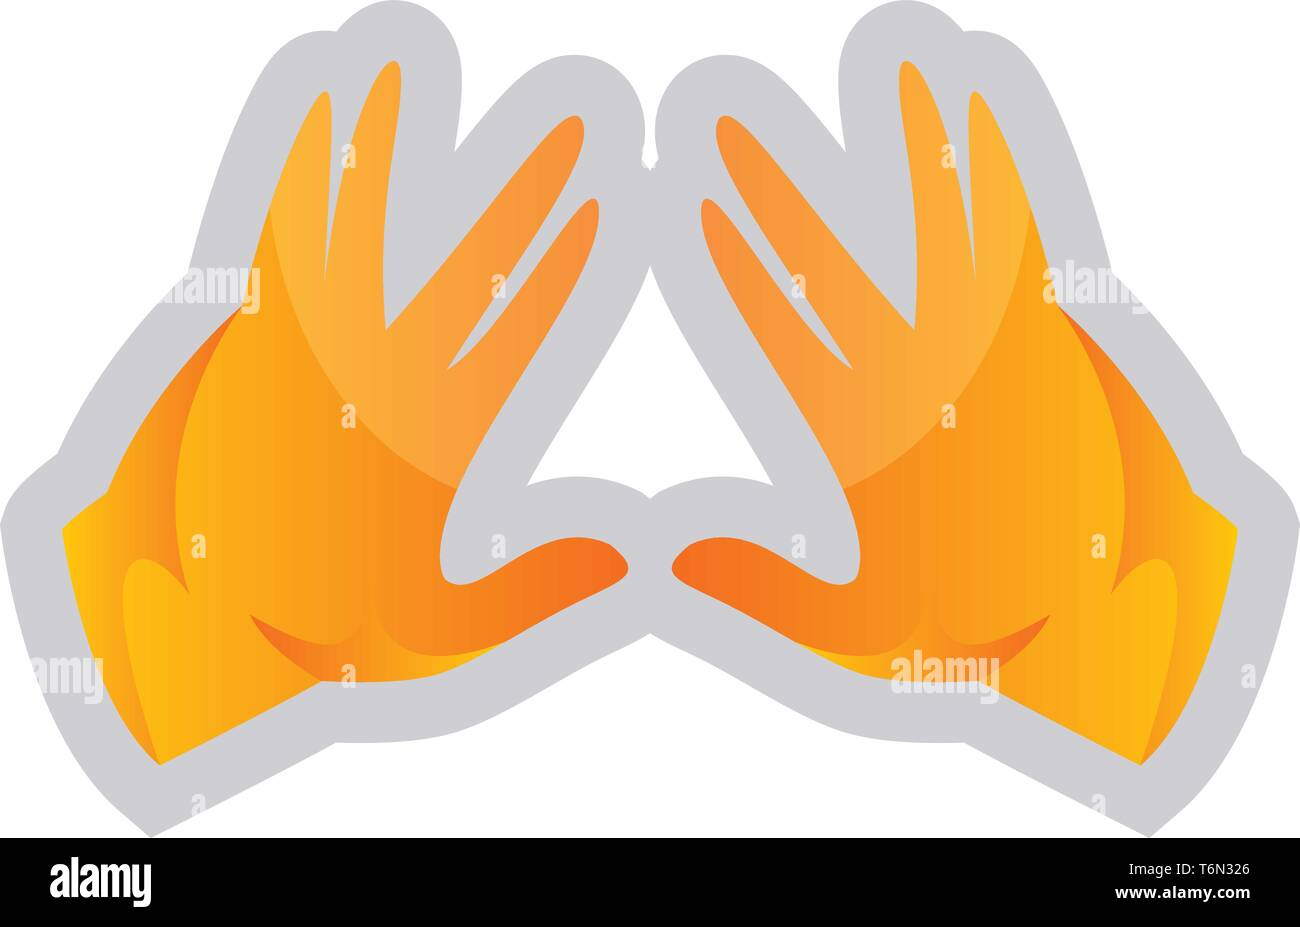 Simple vector illustration on a white background of a yellow Kohen Hands - Stock Vector